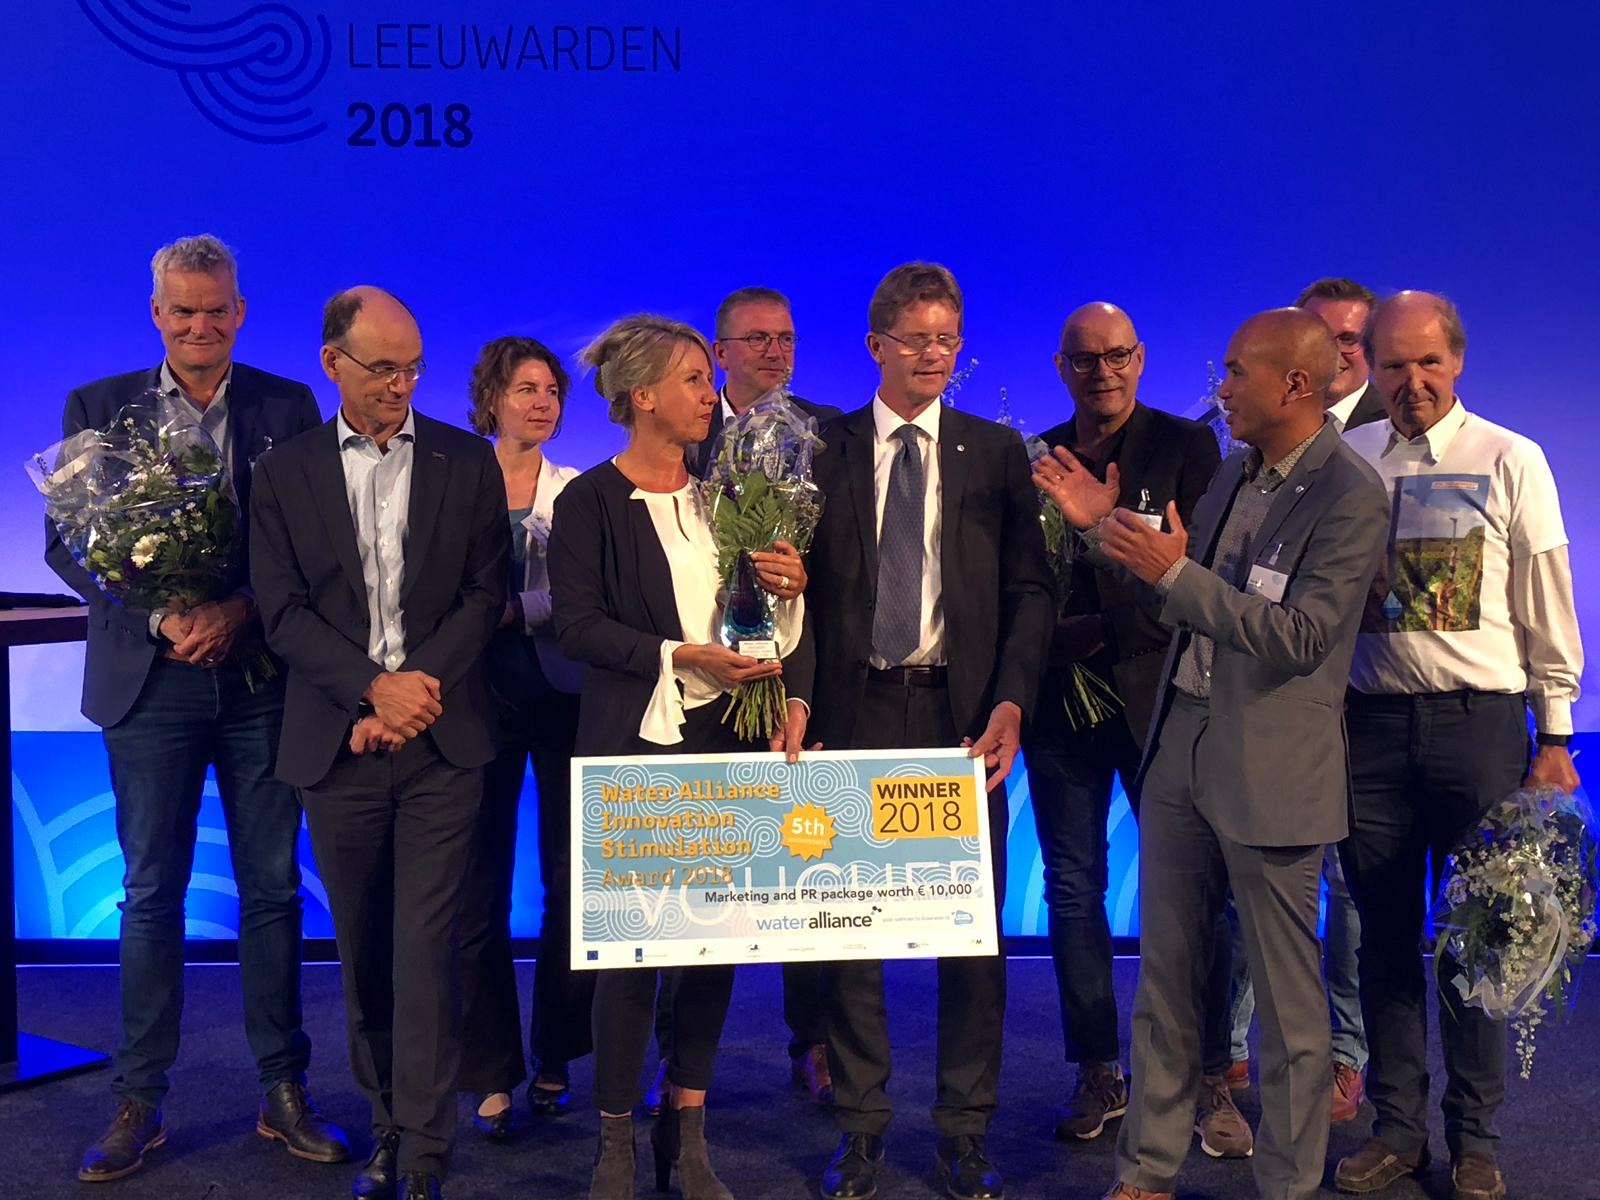 Water Alliance Innovation Stimulation (WIS) Award 2018